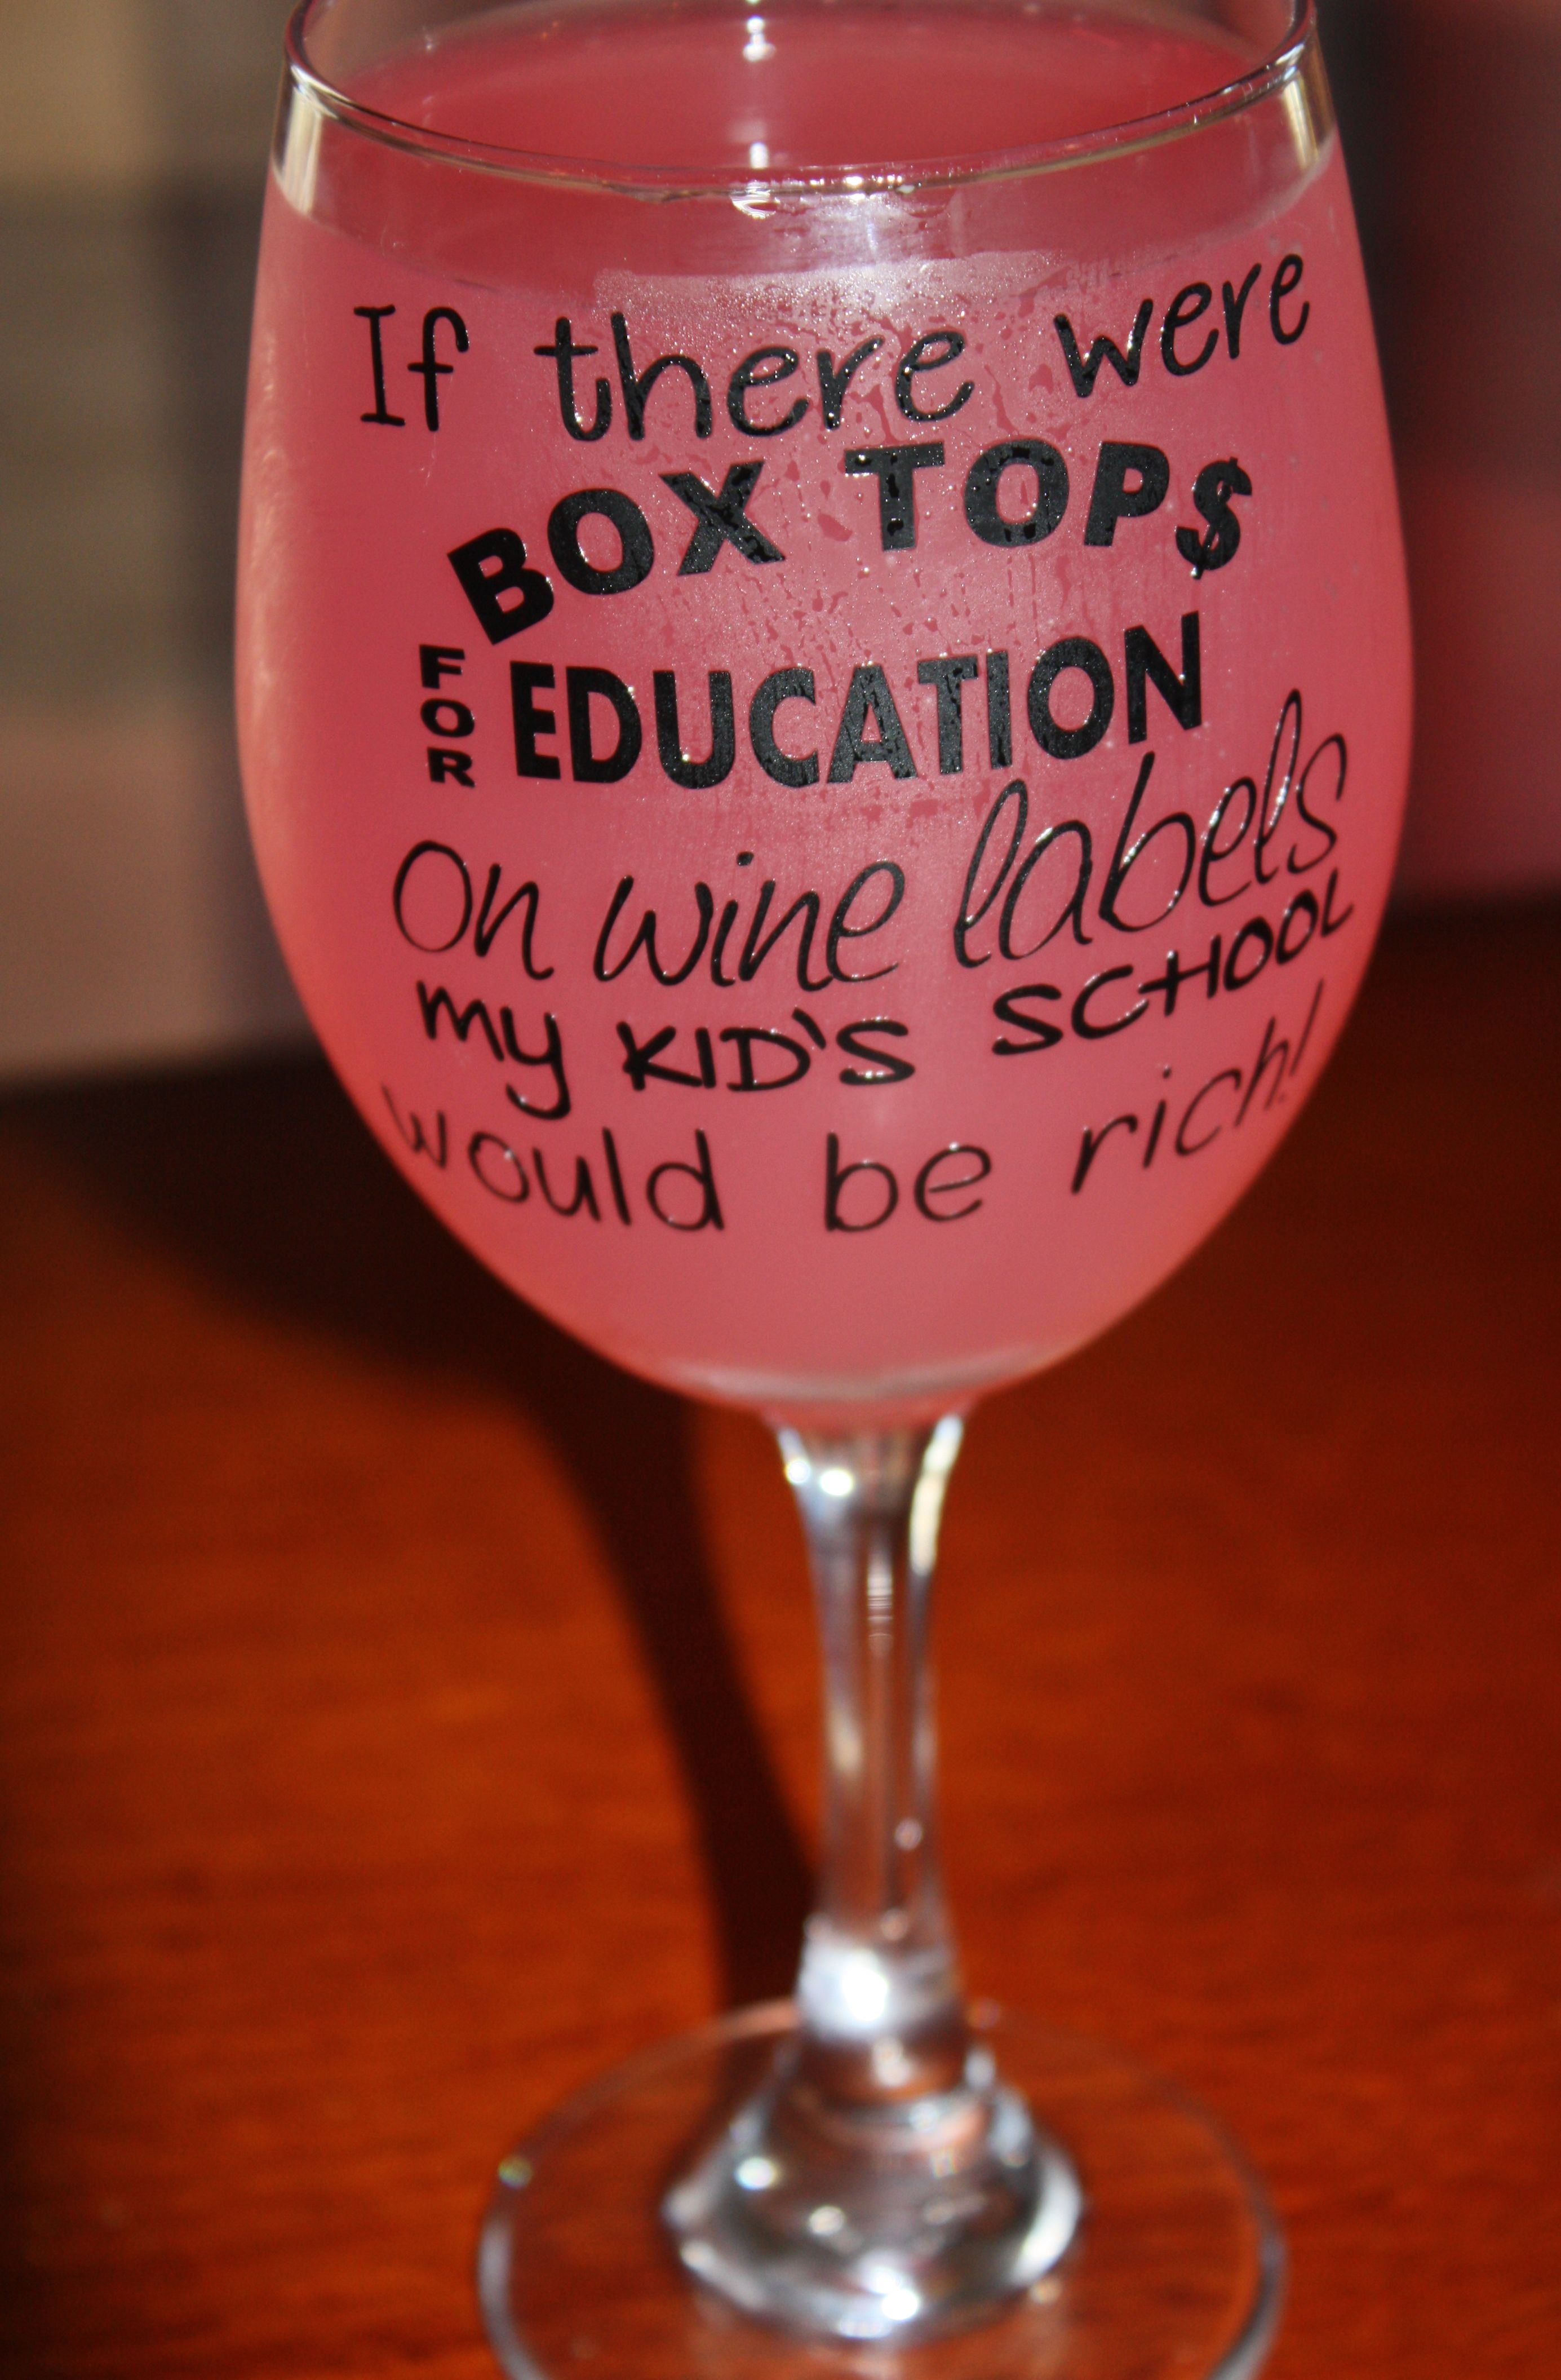 If There Were Box Top For Education On Wine Labels My Kid S School Would Be Rich Box Tops Kids School School Donations